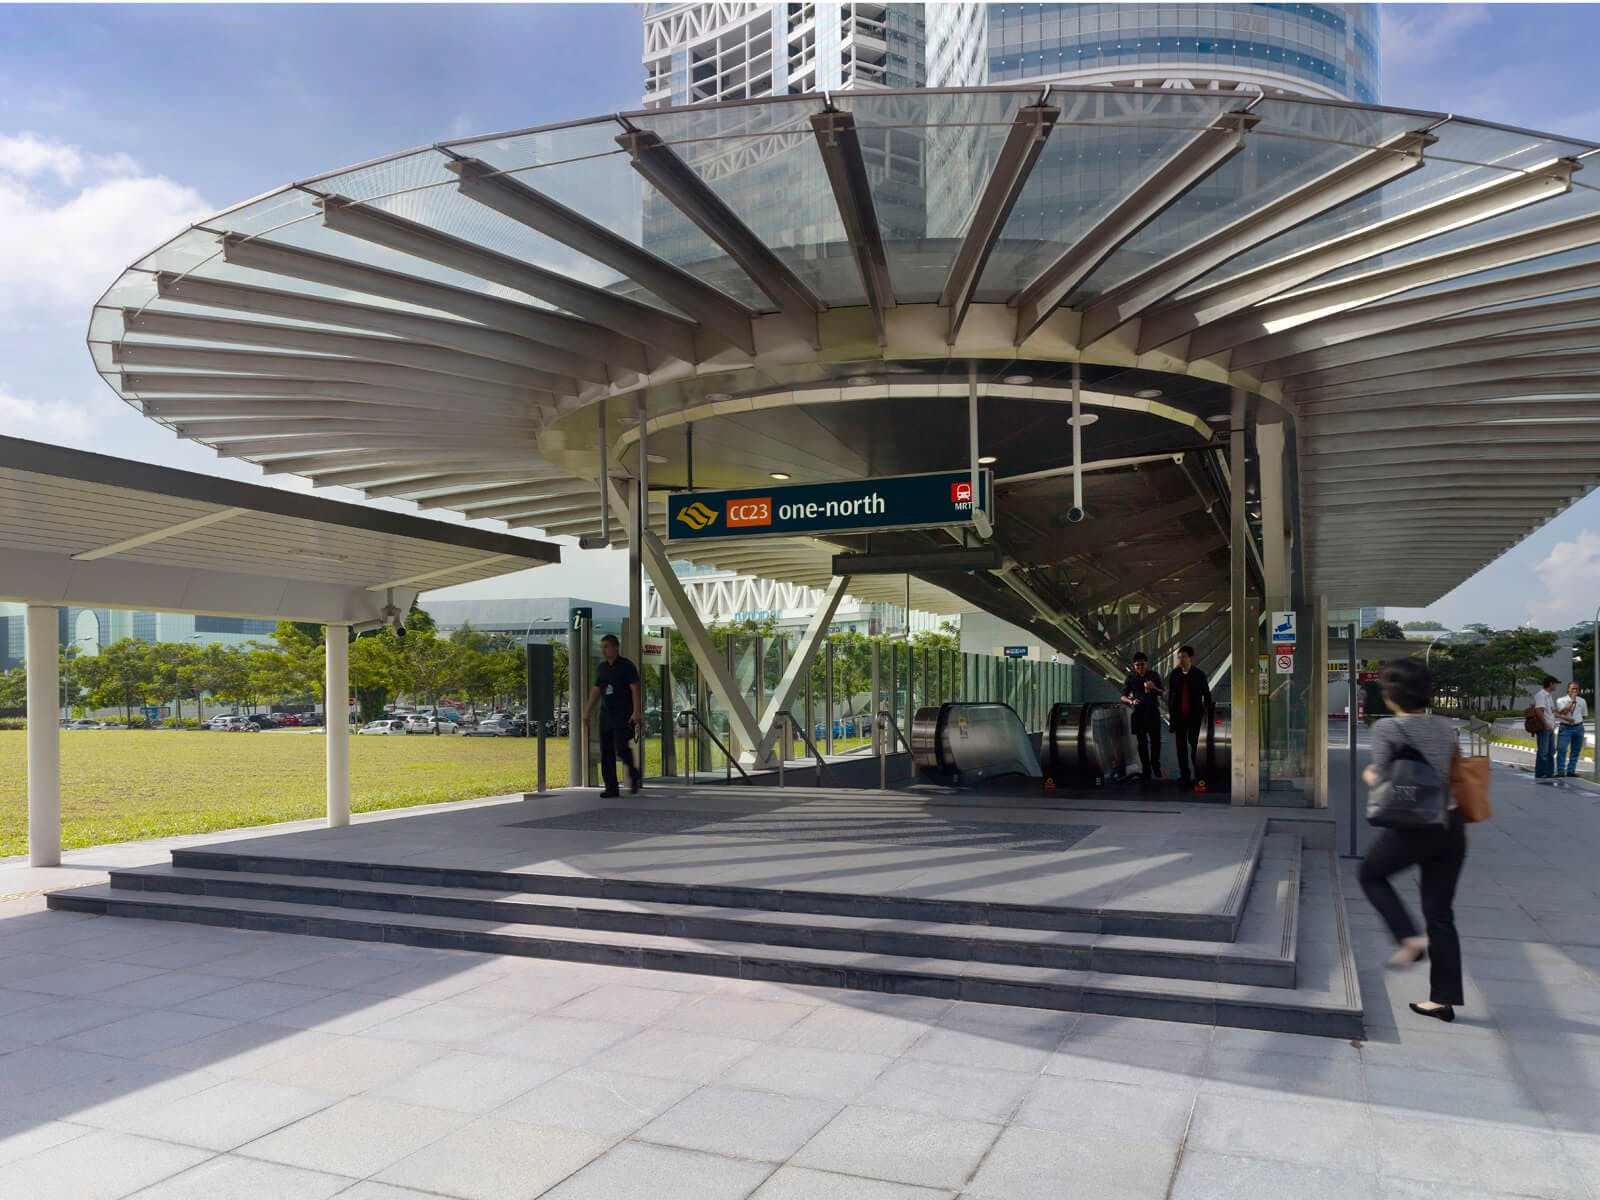 one-north MRT Station is not only near One-North Eden, it also contains many cafes, a supermarket and a big Koufu food court outisde the station!